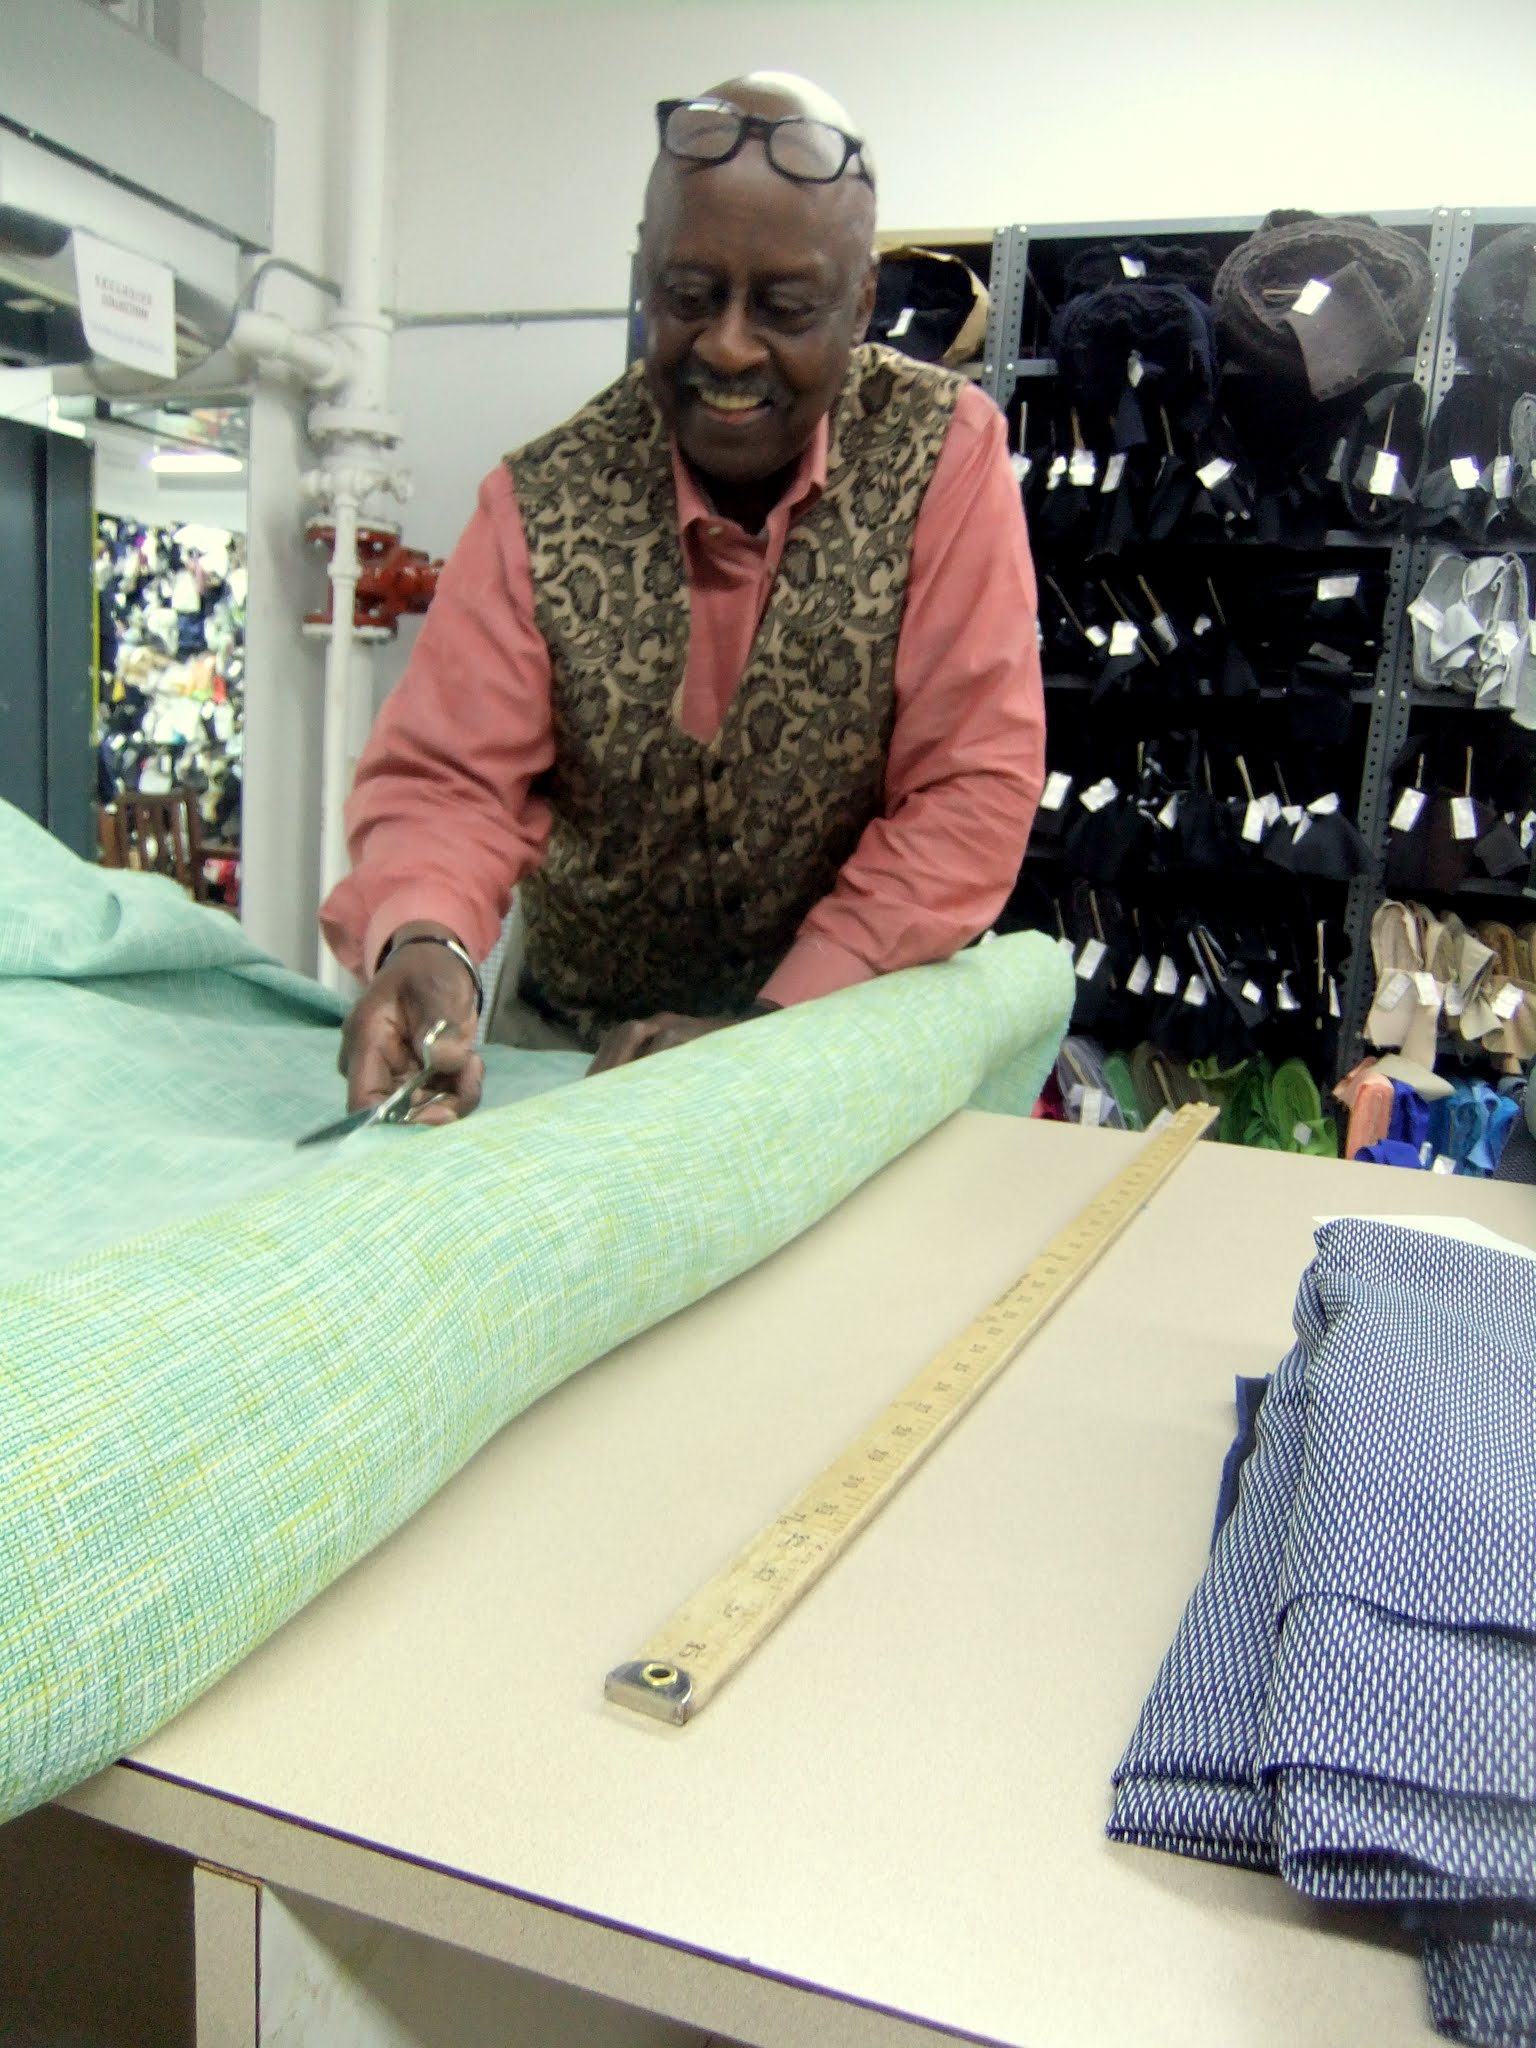 """Photo: """"You makin' a dress? Mm-mm, them bugs in the park will LURVE YOU, yes they will!"""", said the best man in the world in a singing Southern accent down at Paron Fabrics, and continued: """"You from London? The Bridge fallen down yet?""""."""